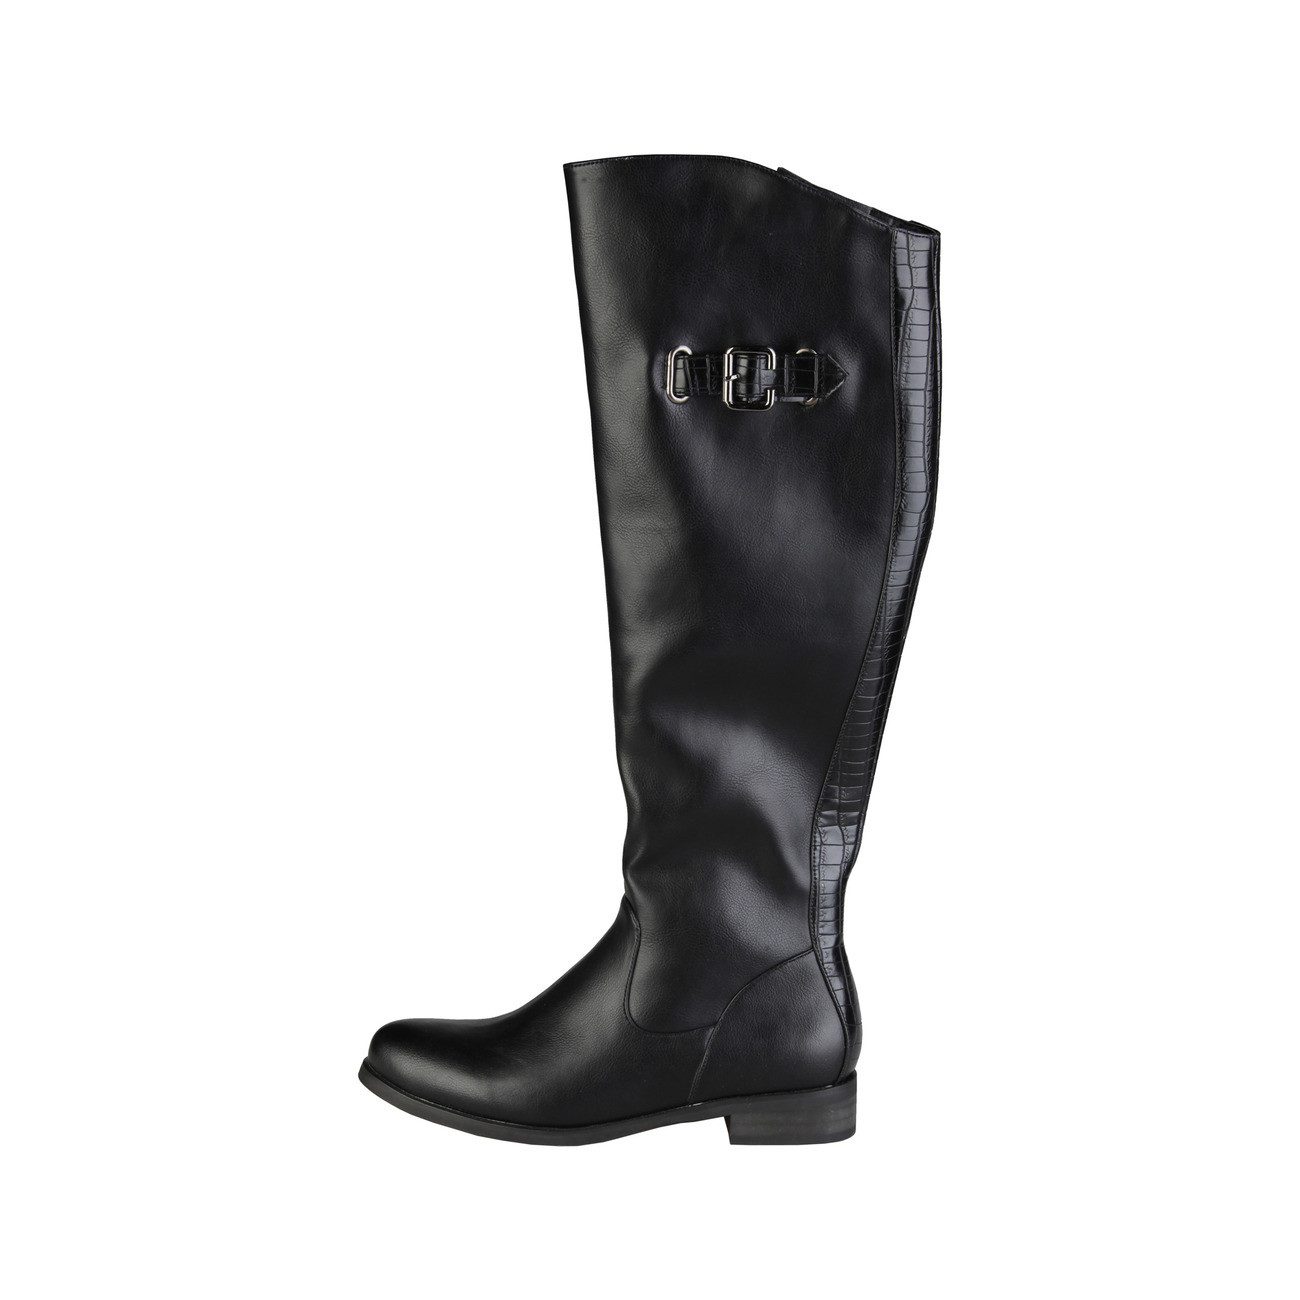 Ladies High Boots Ana Lublin - LISELOTT From Eco Leather With ... e8a2871b5f